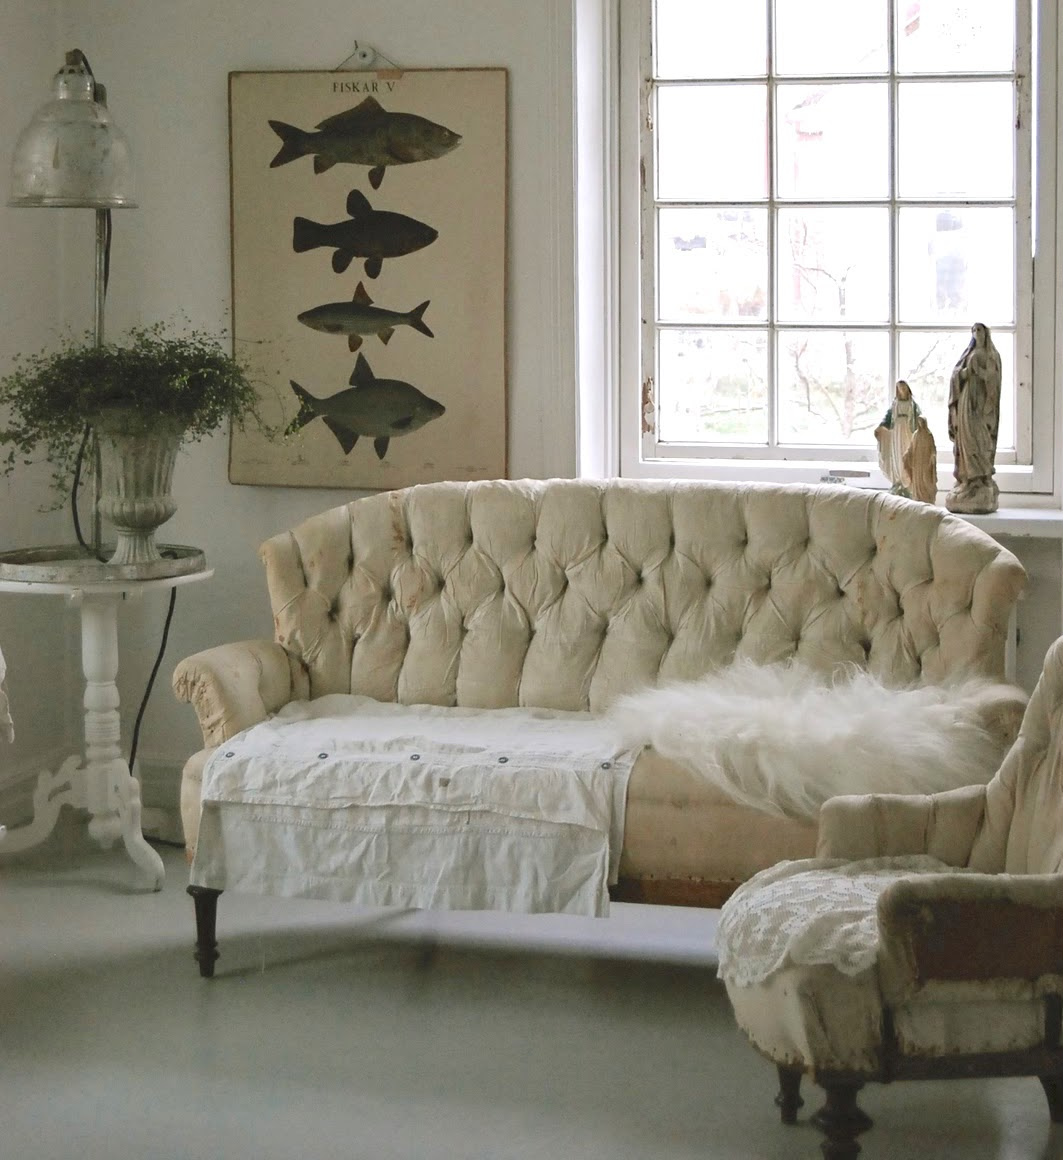 statement sofas - vintage Swedish tufted sofa stripped to the calico - hviturlakkris.blogspot.com via Atticmag